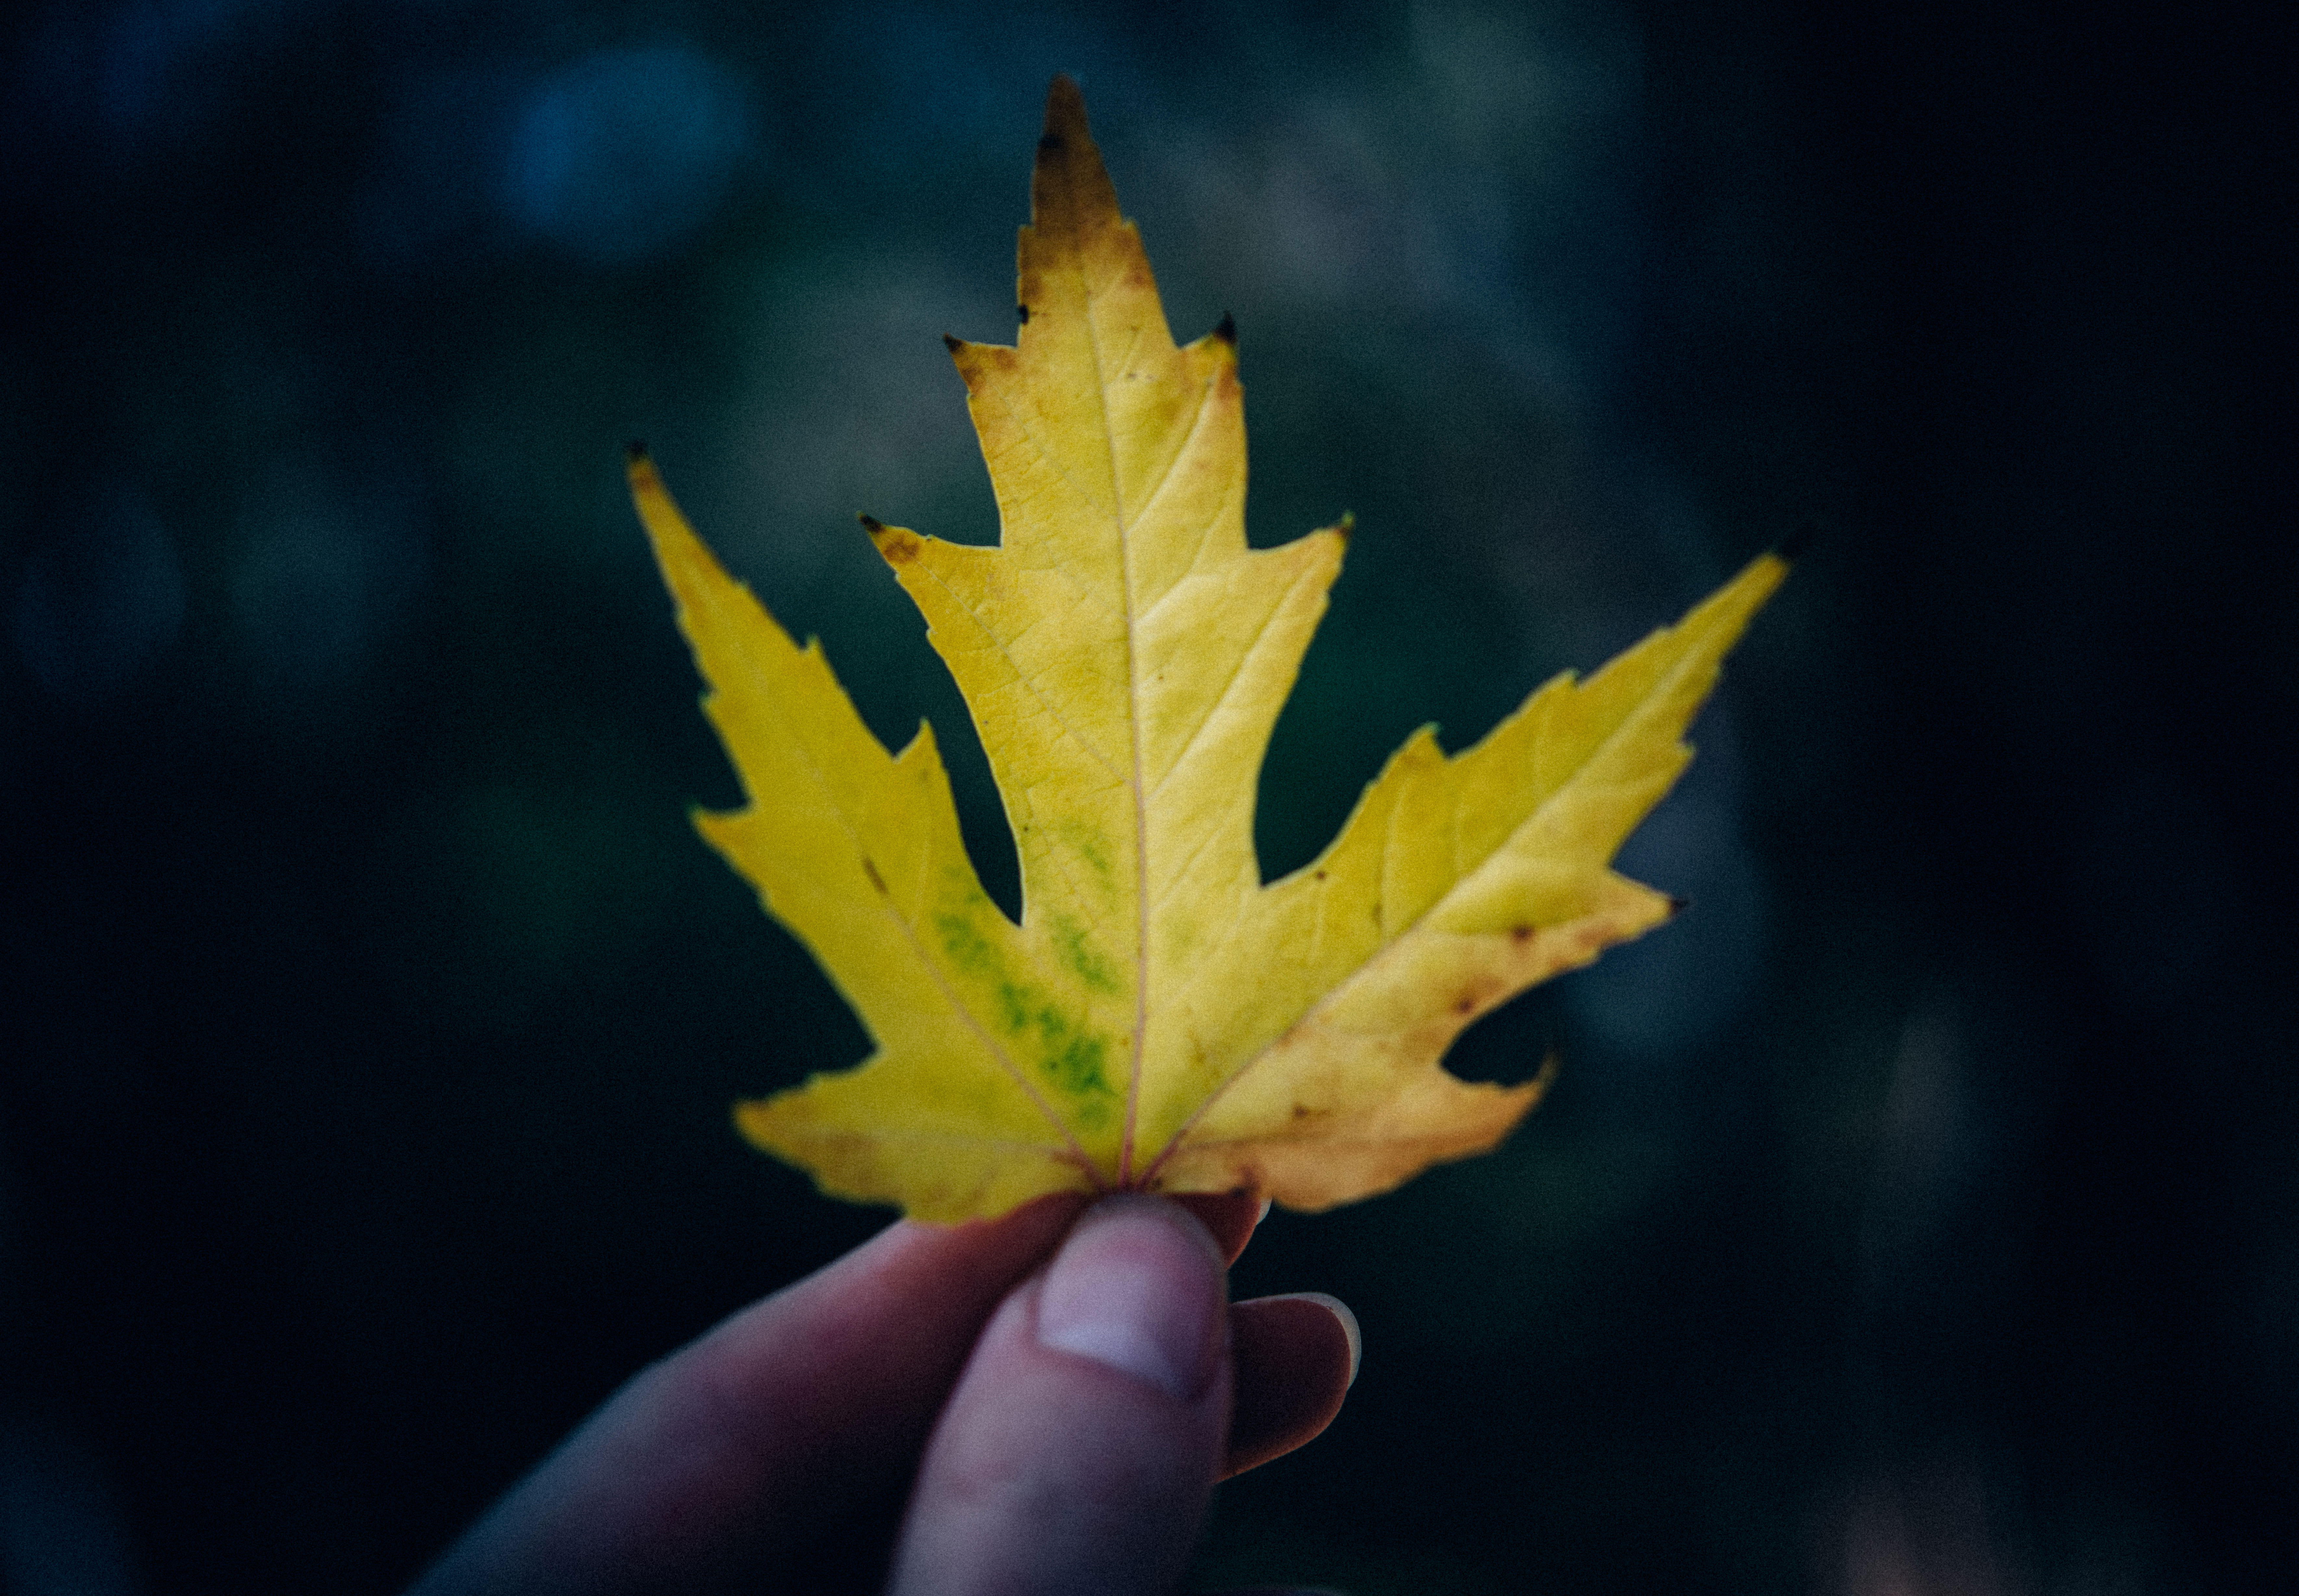 fingers holding a yellow leaf